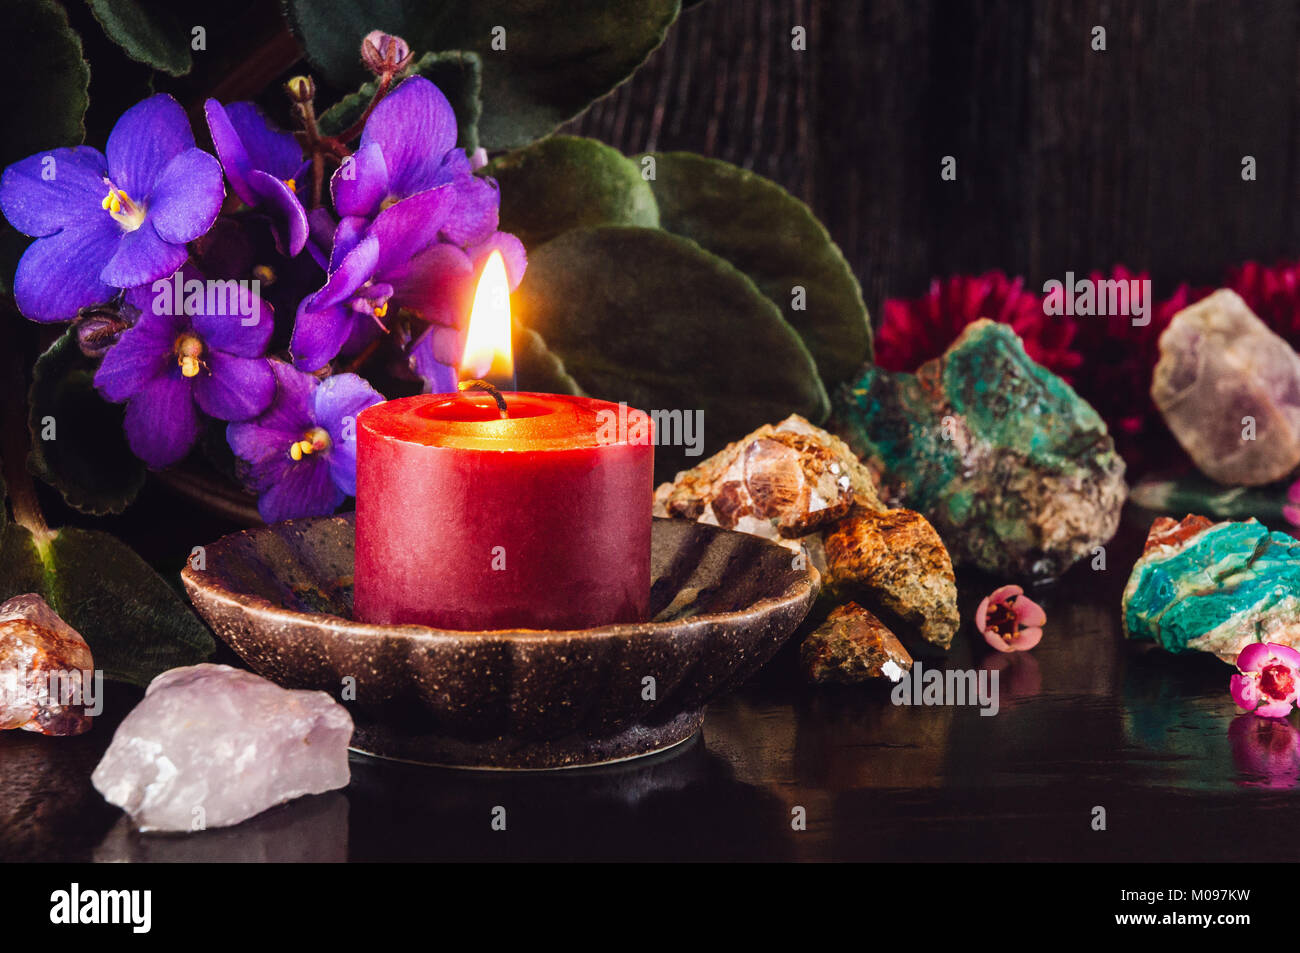 Red Candle with Amethyst, Garnet, Turquoise and Mixed Flowers - Stock Image